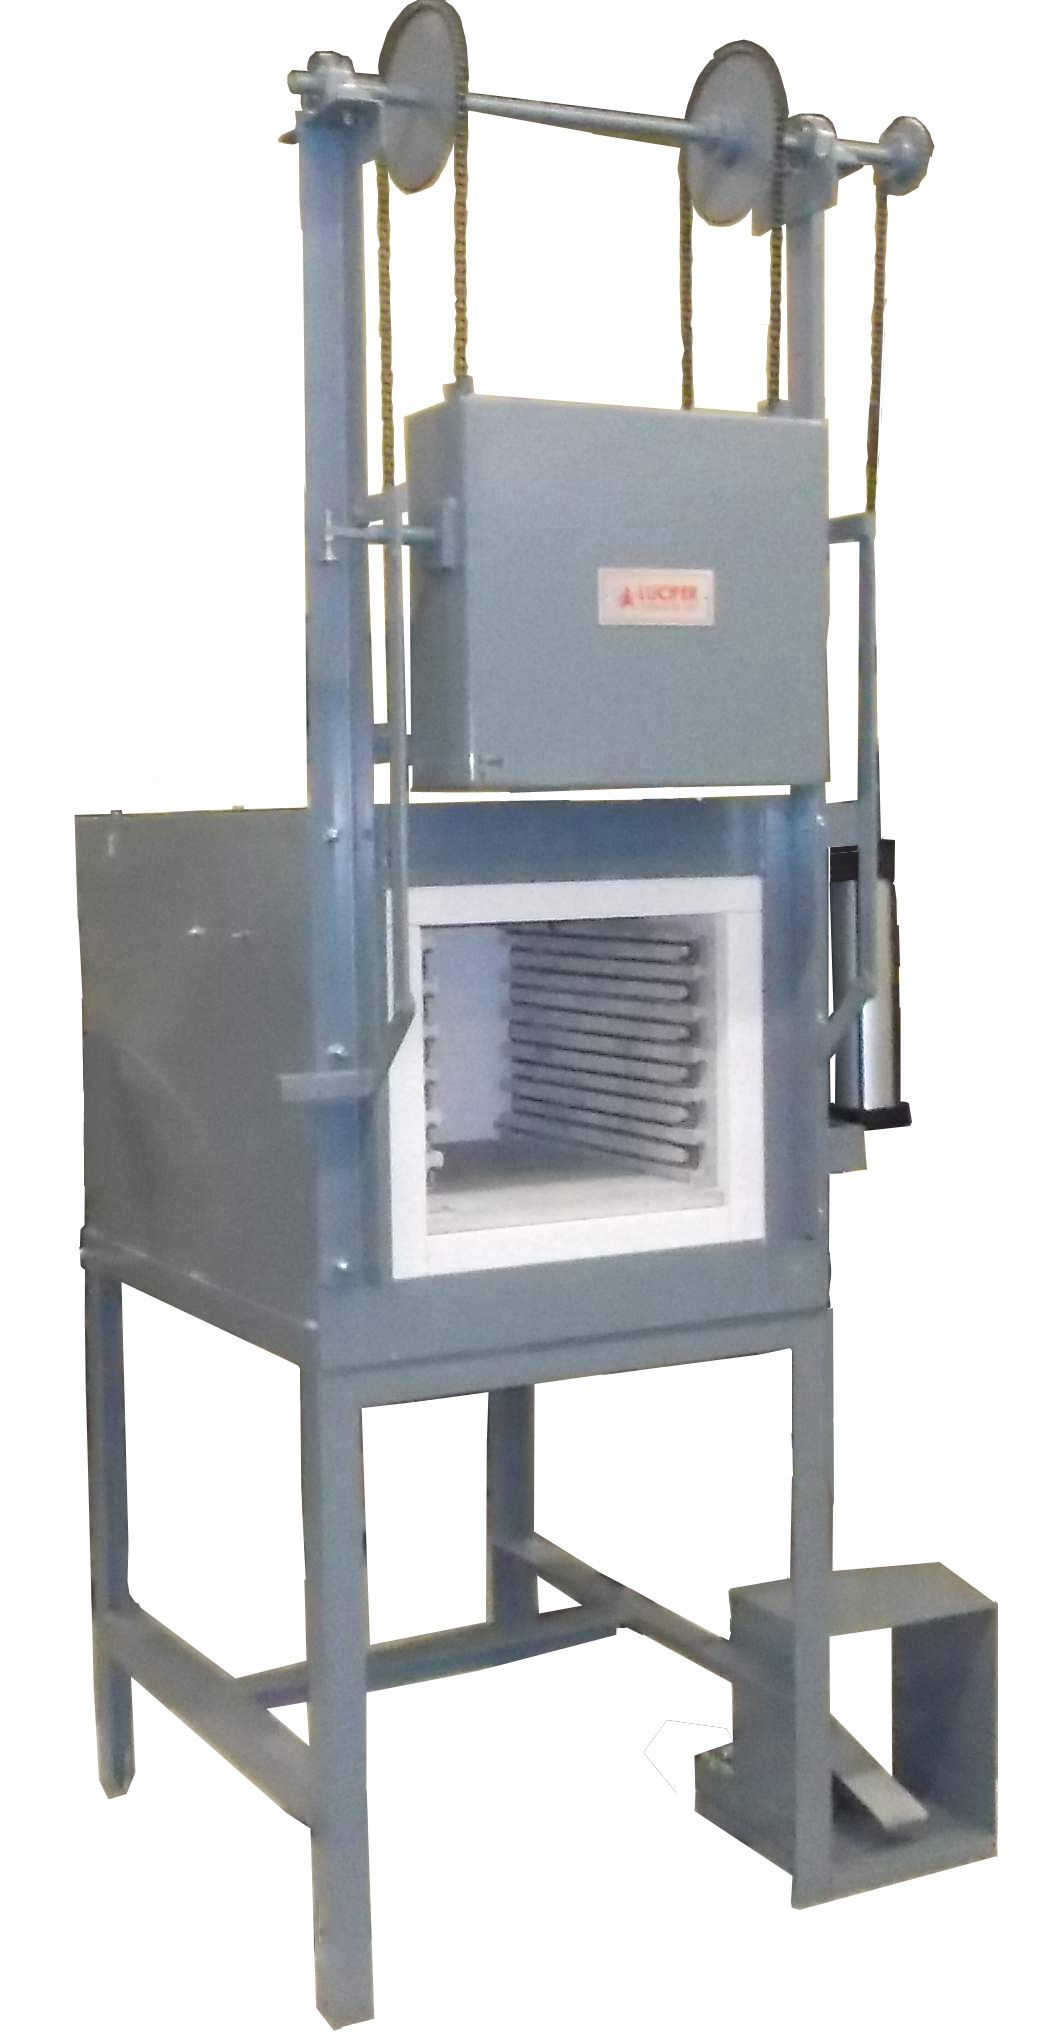 Air Door Lifts : This box furnace has an air operated verticle lift door